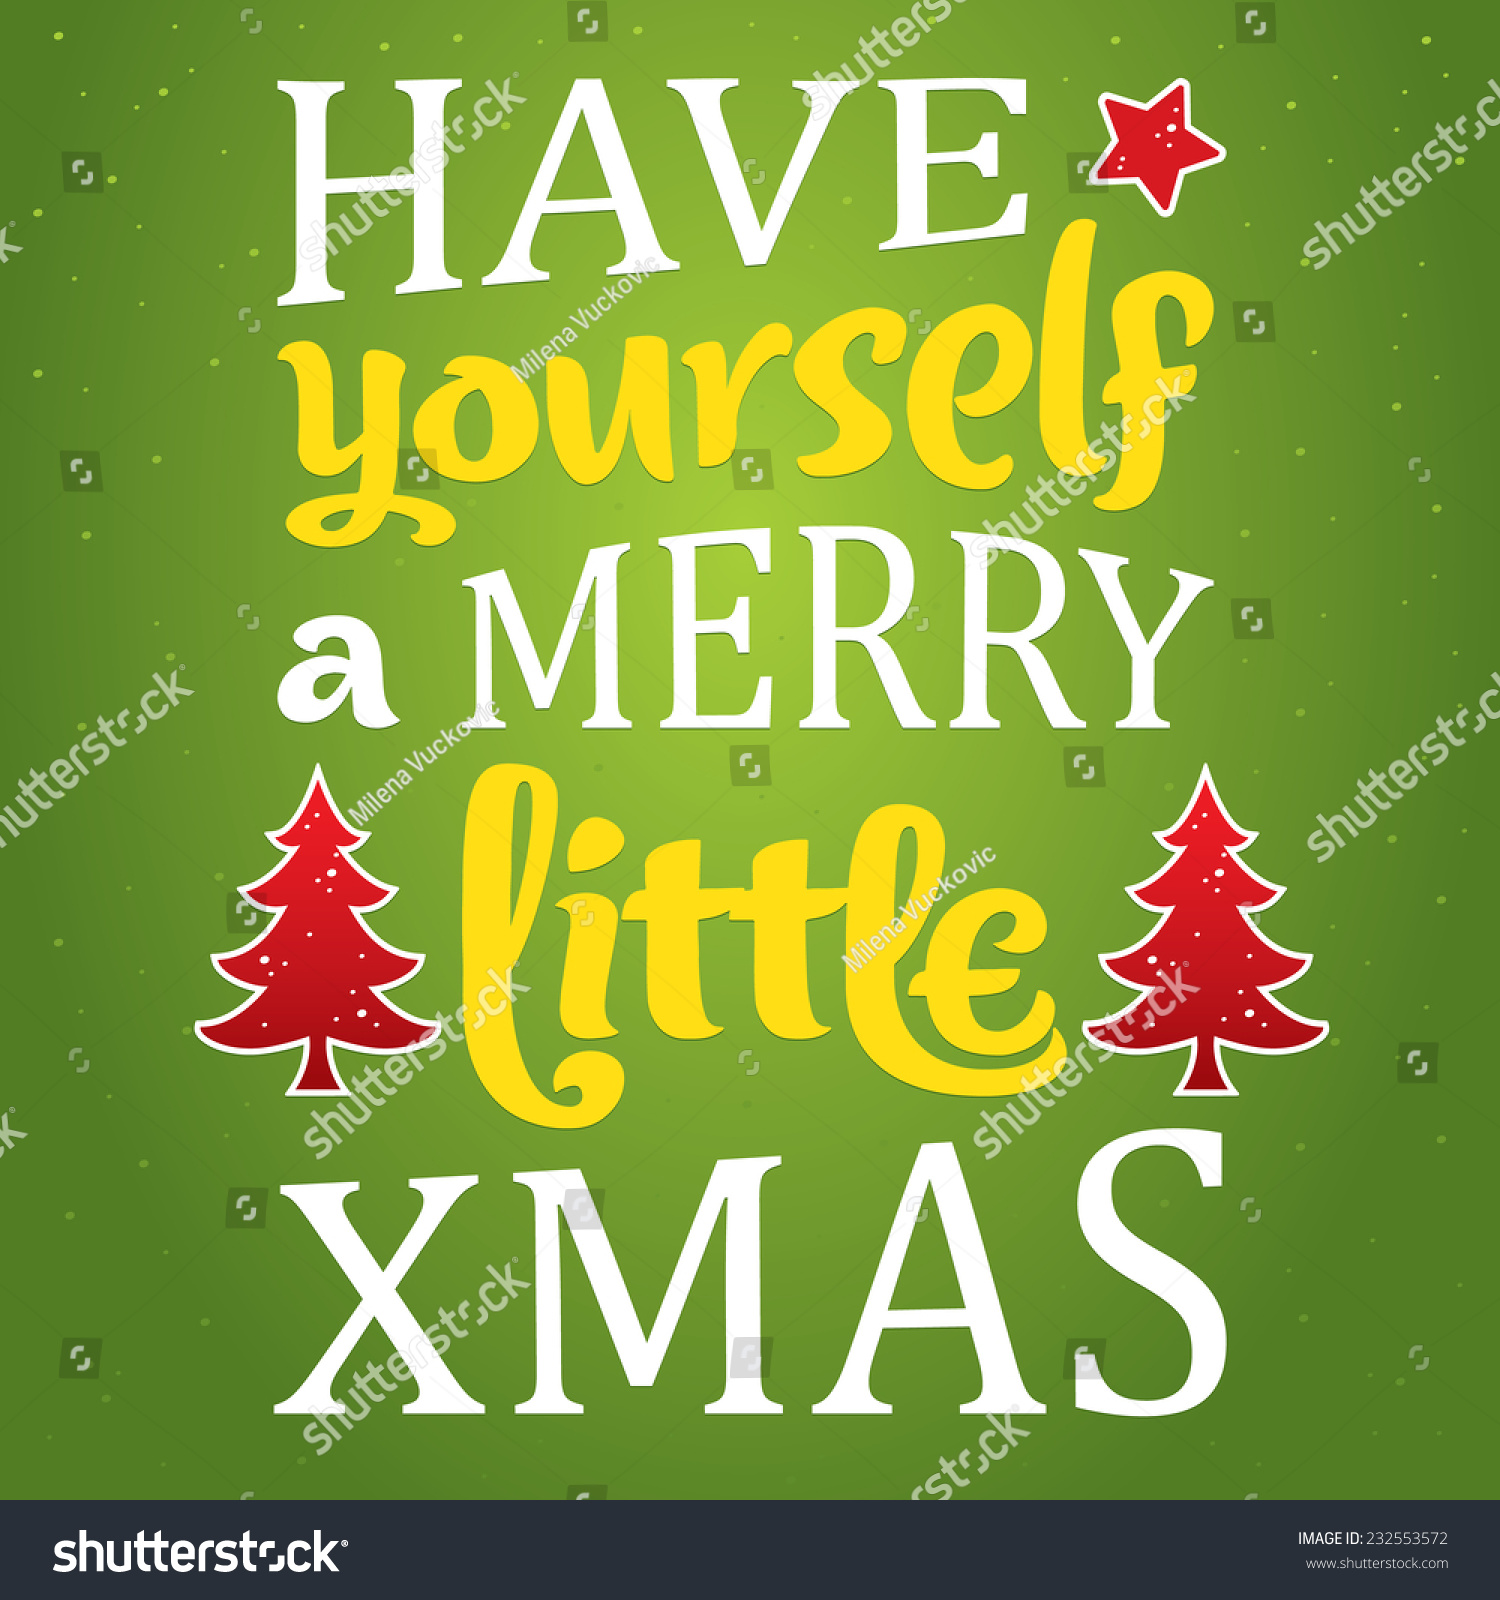 Merry Christmas Greeting Card Unique Typography Stock Vector